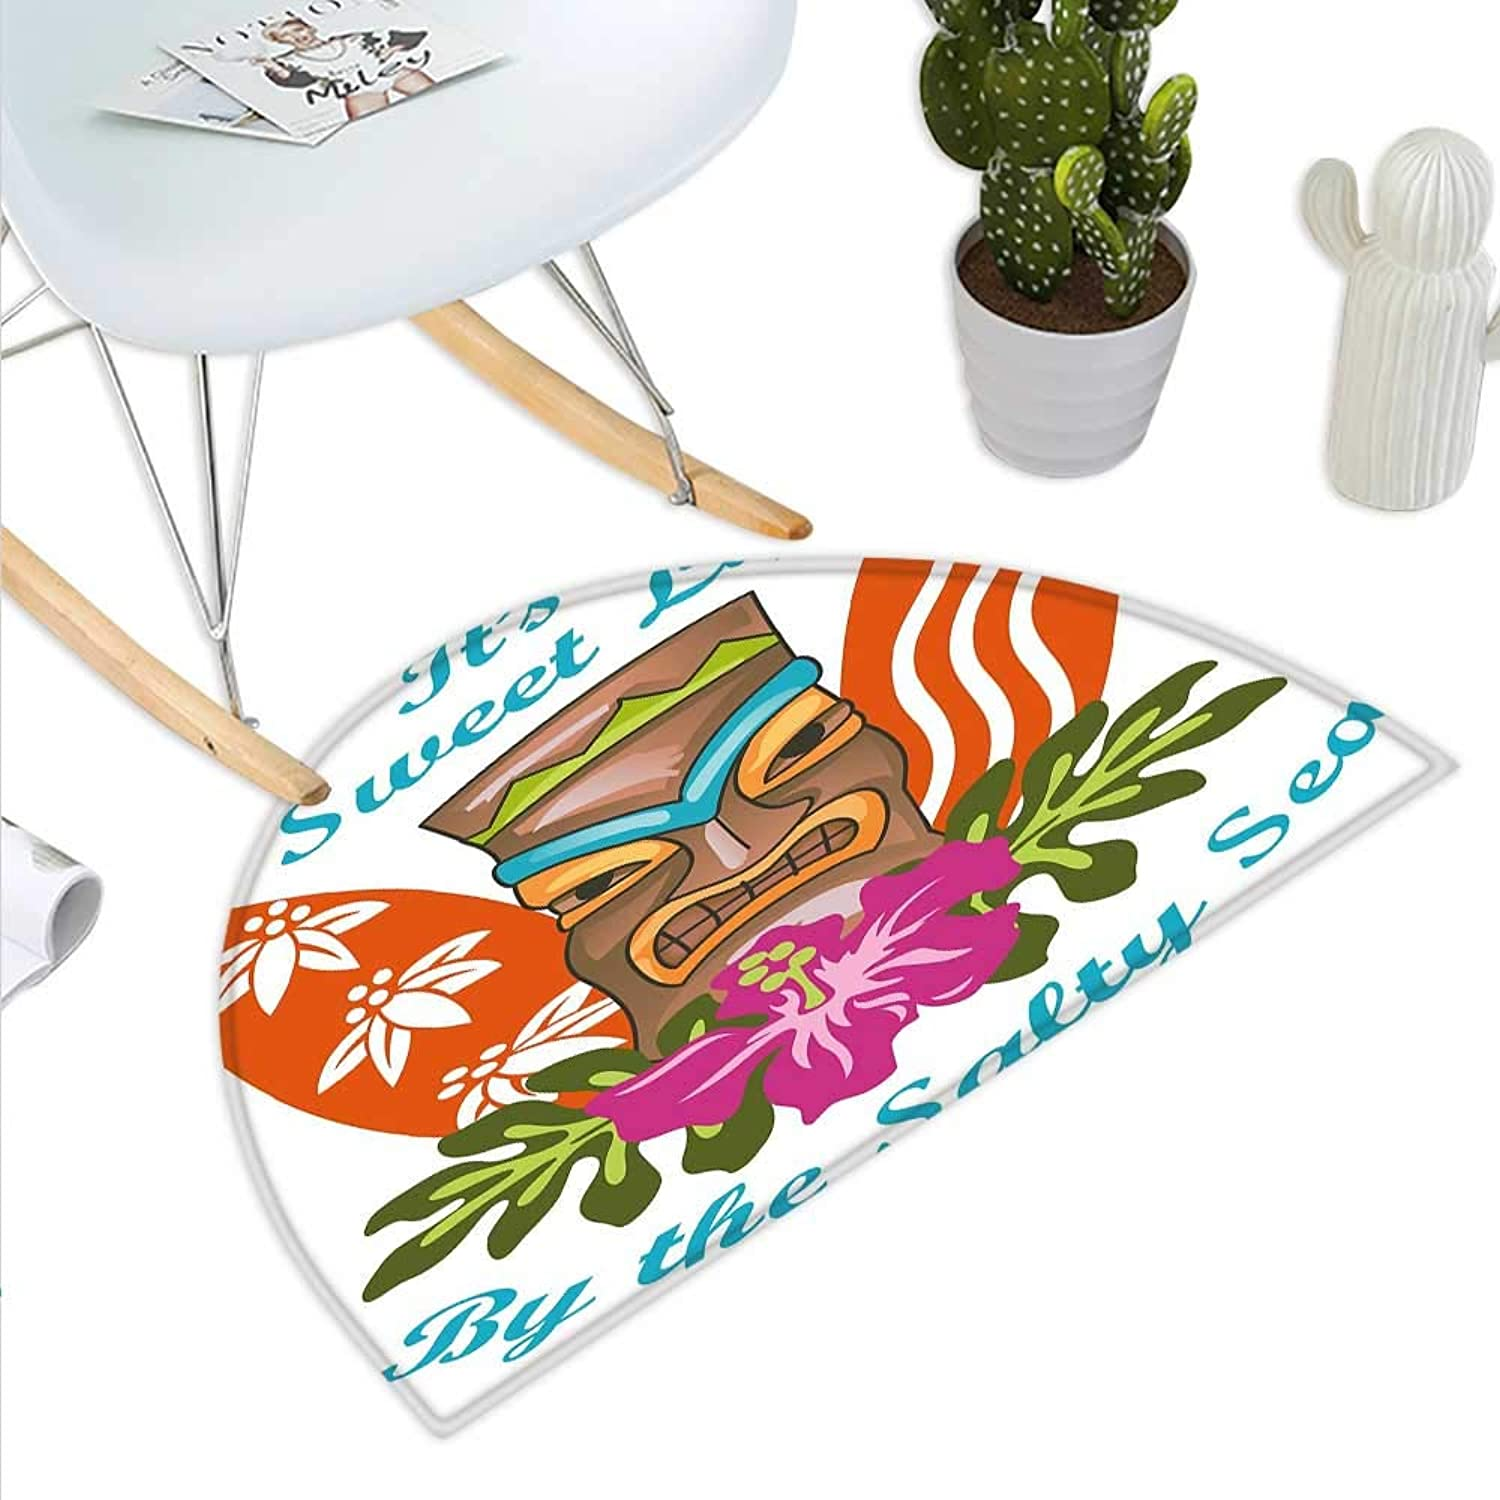 Tiki Bar Decor Semicircle Doormat Sweet Life by The Salty Sea Text with Tiki Figure and Hibiscus Flower Print Halfmoon doormats H 35.4  xD 53.1  Multicolor